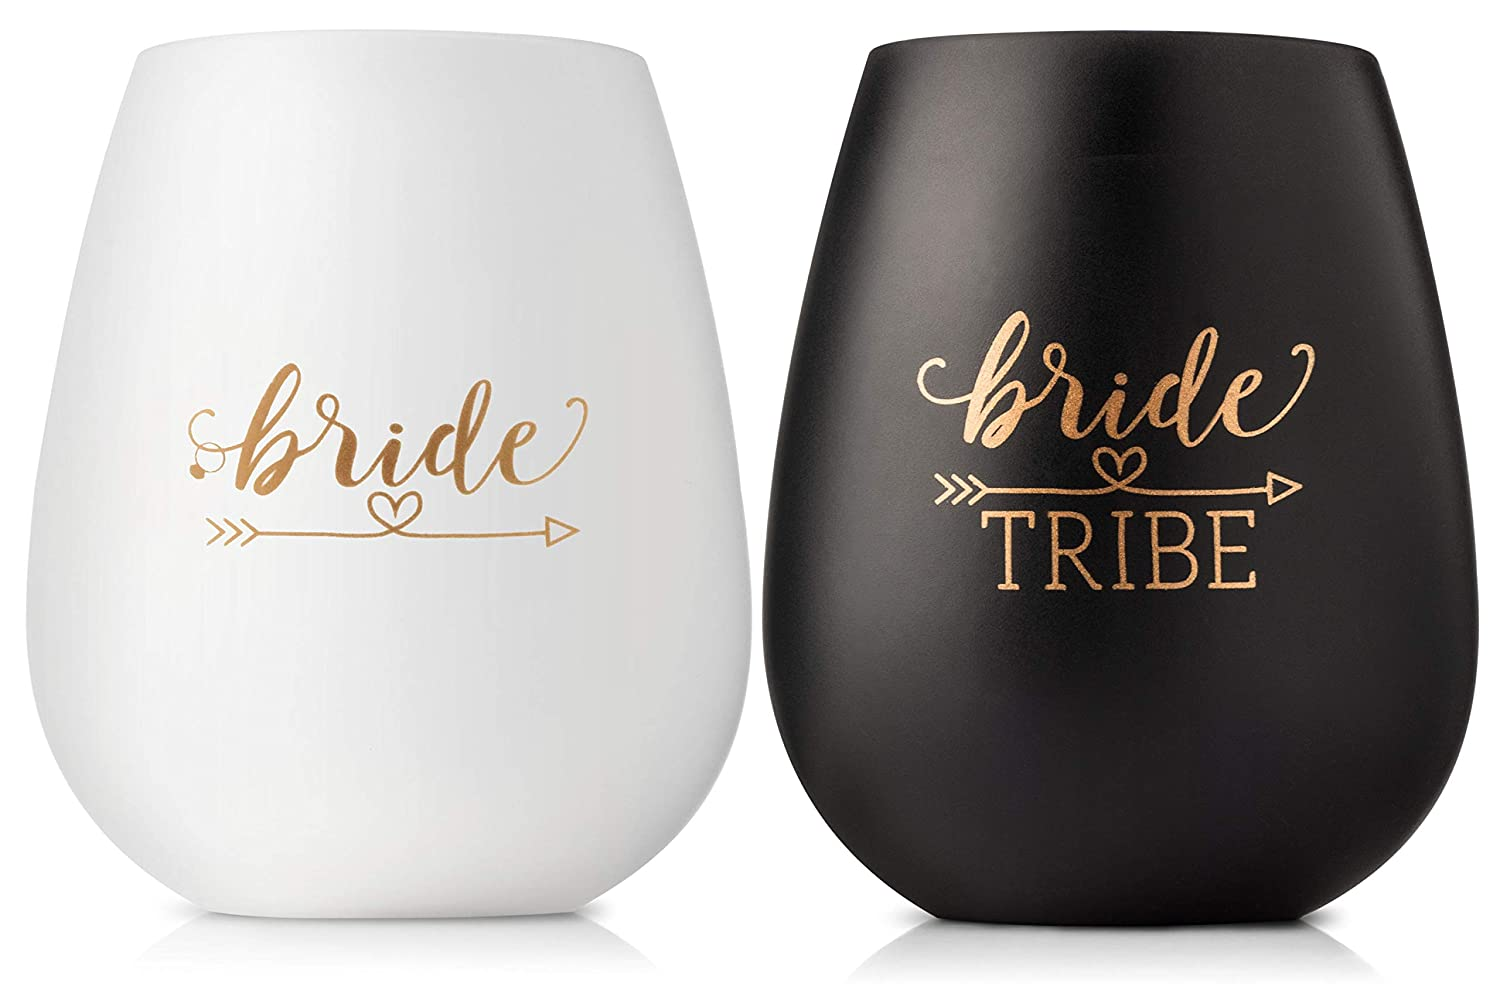 Bride Tribe Bachelorette Party Cups | Set of 10 Black & Gold Silicone Wine Glasses | Instagram Ready | Great for Bridal Showers & Weddings | Team Bride & Bridesmaids Gifts, Supplies, Decorations